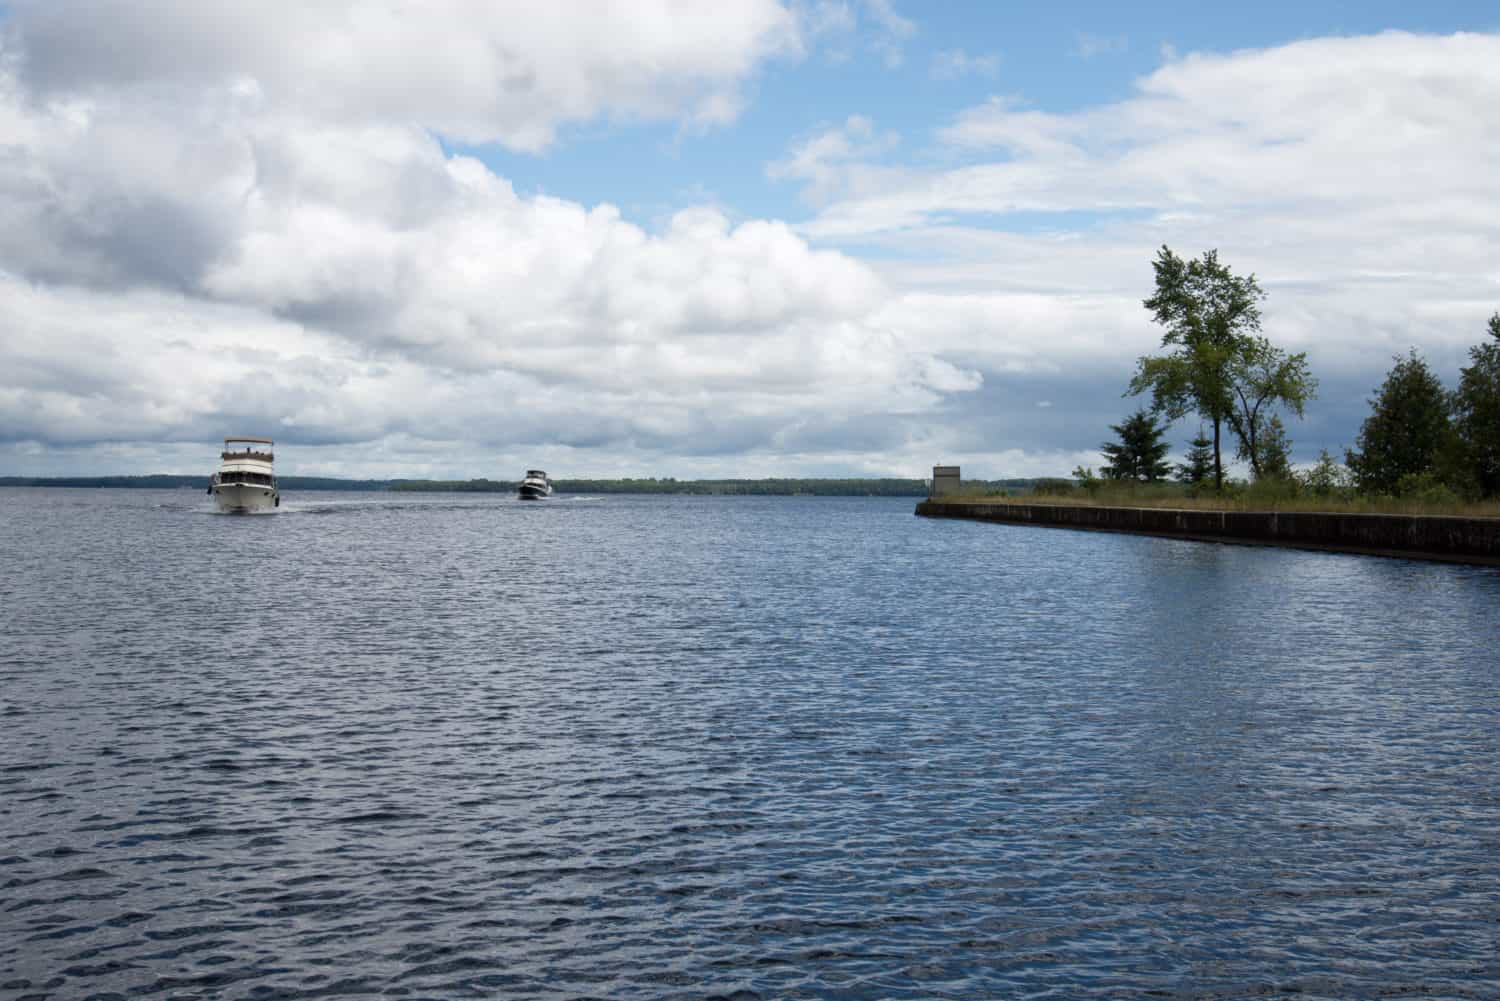 Boating on a summer's day (Balsam Lake, Ontario, Canada)